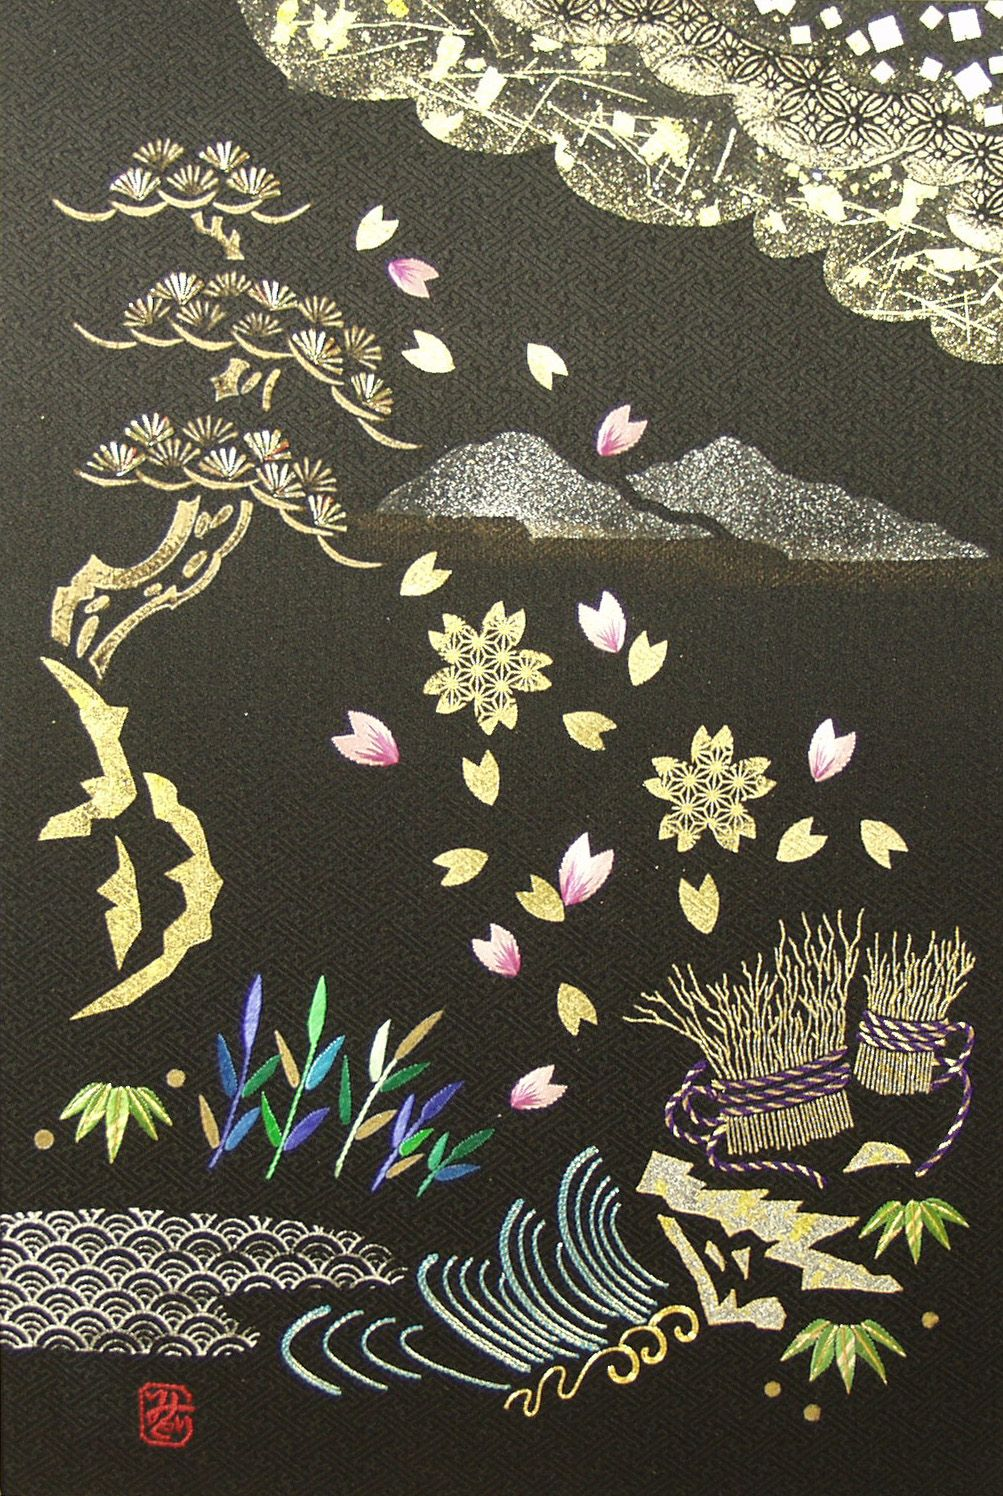 9 carps scheme of embroidery of a thematic picture (photo)